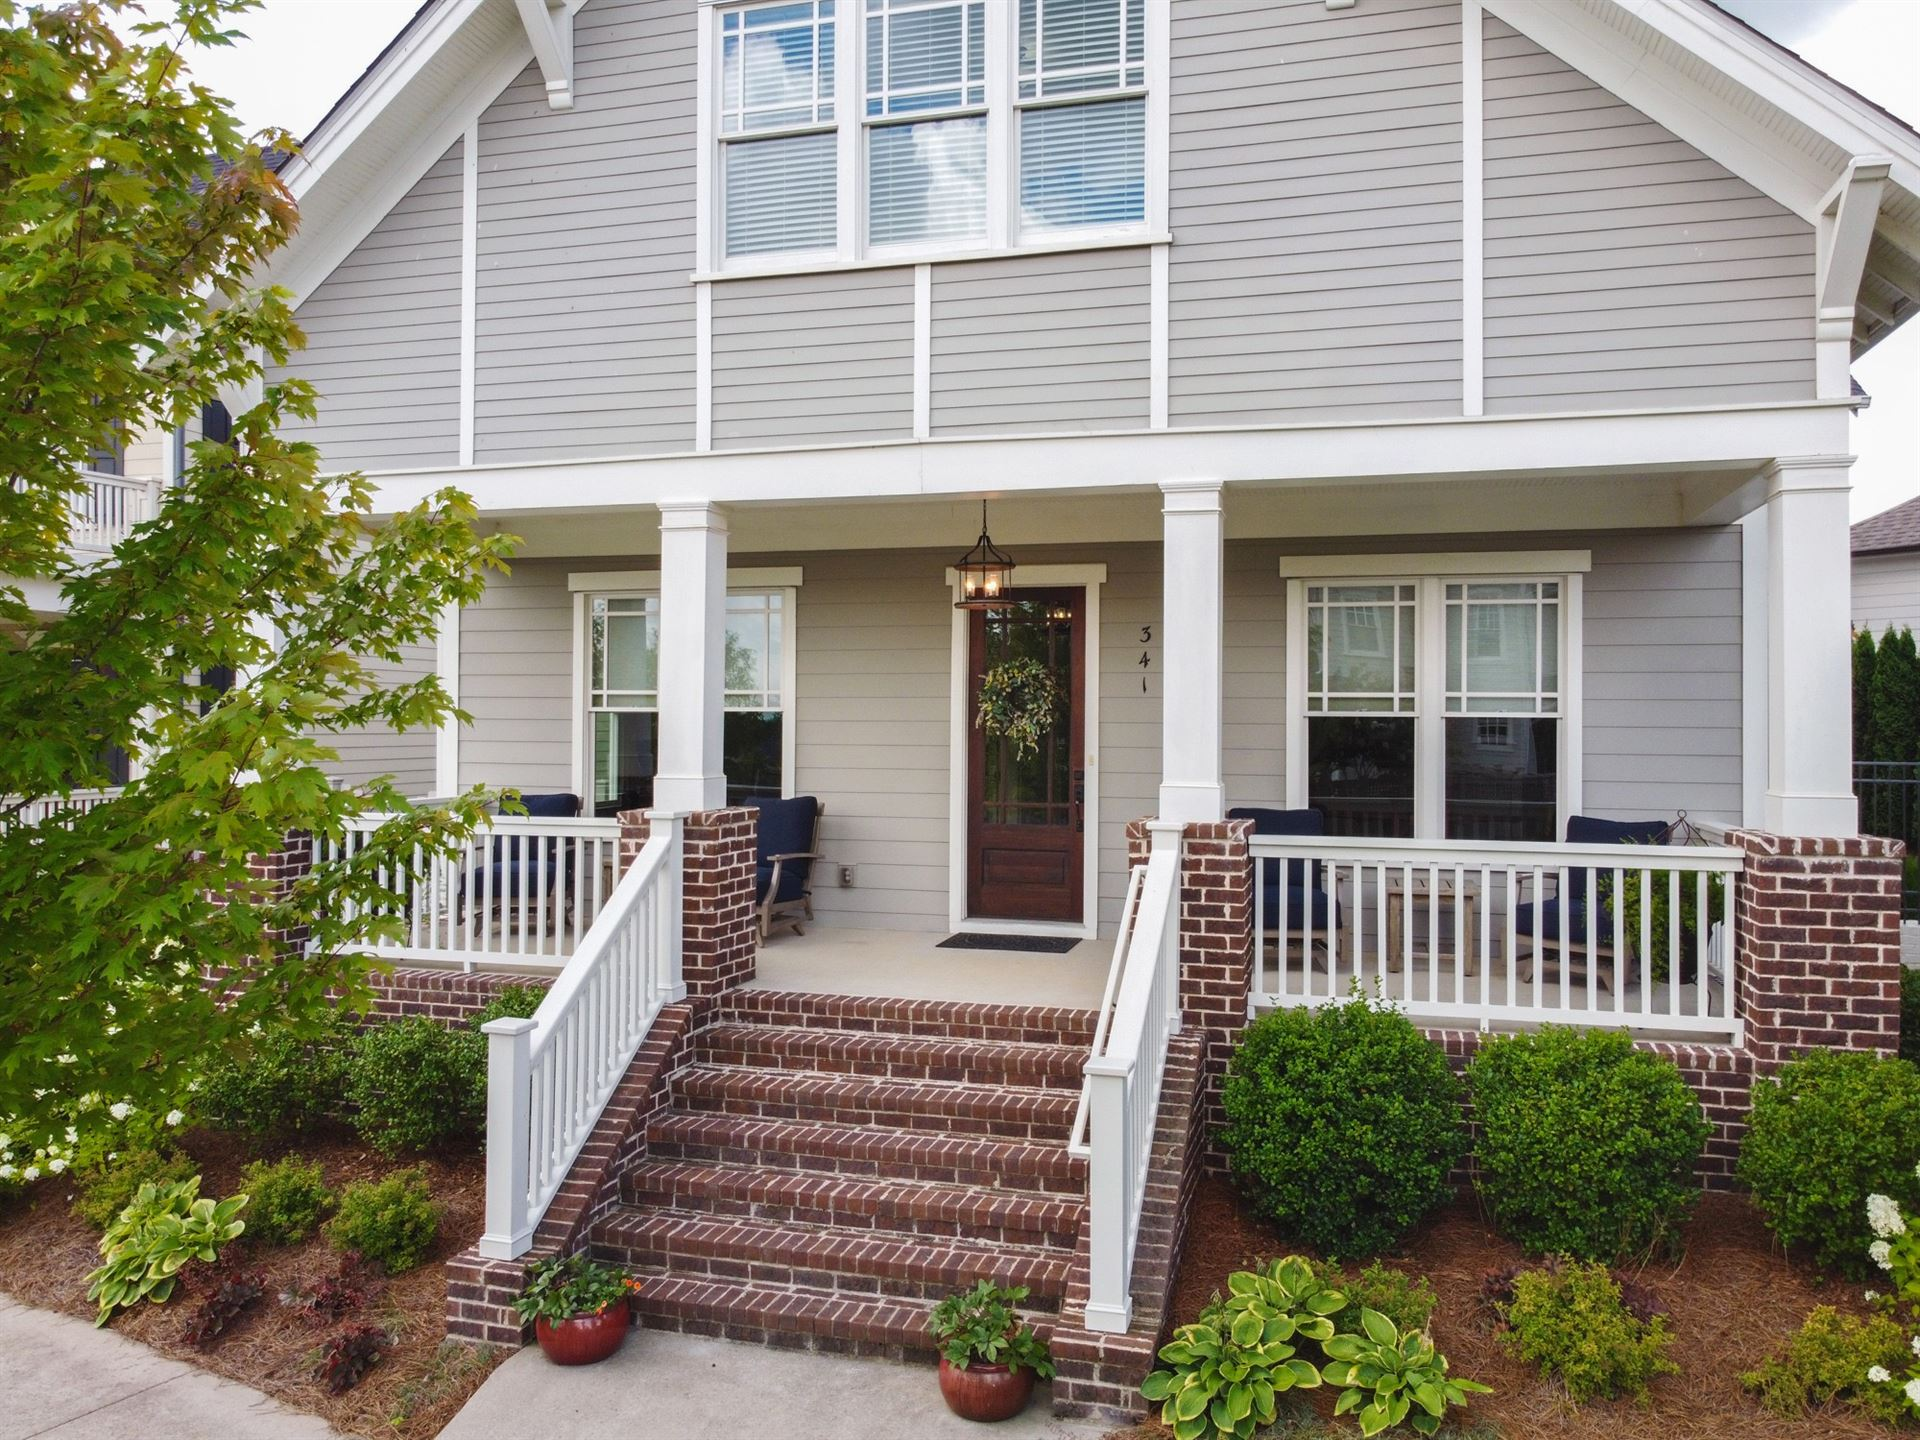 Photo of 341 Henry Russell St, Franklin, TN 37064 (MLS # 2276421)